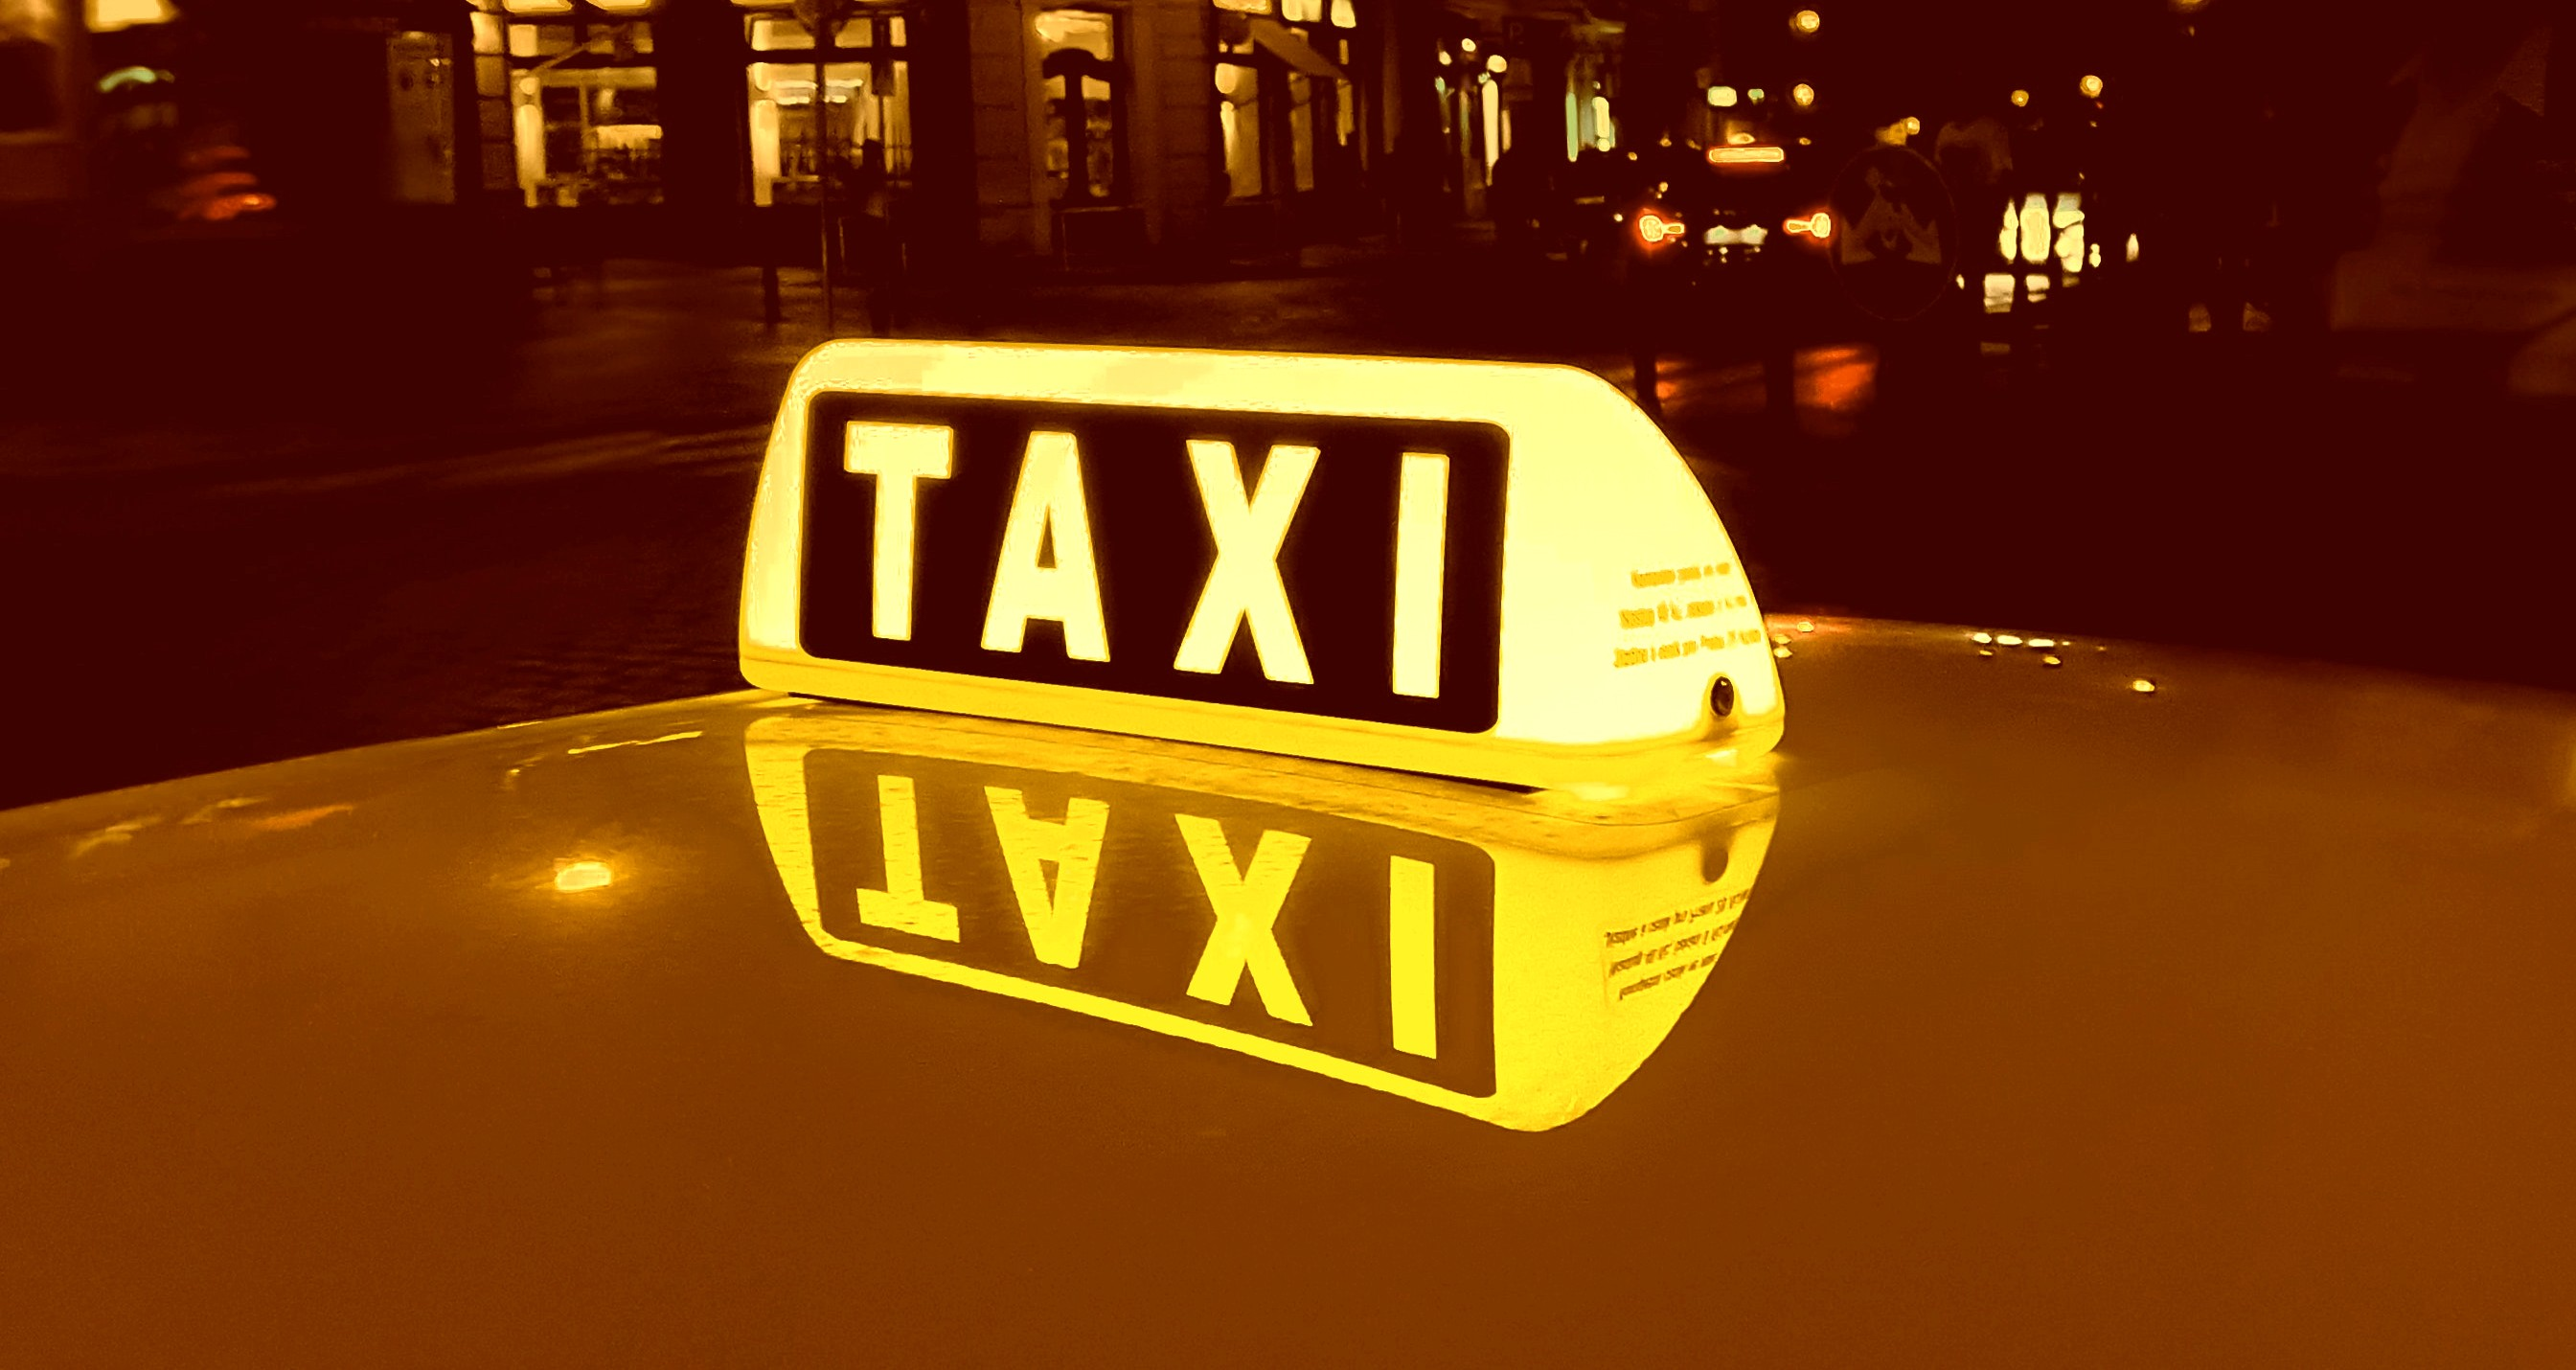 non fault accident taxi credit hire taxi